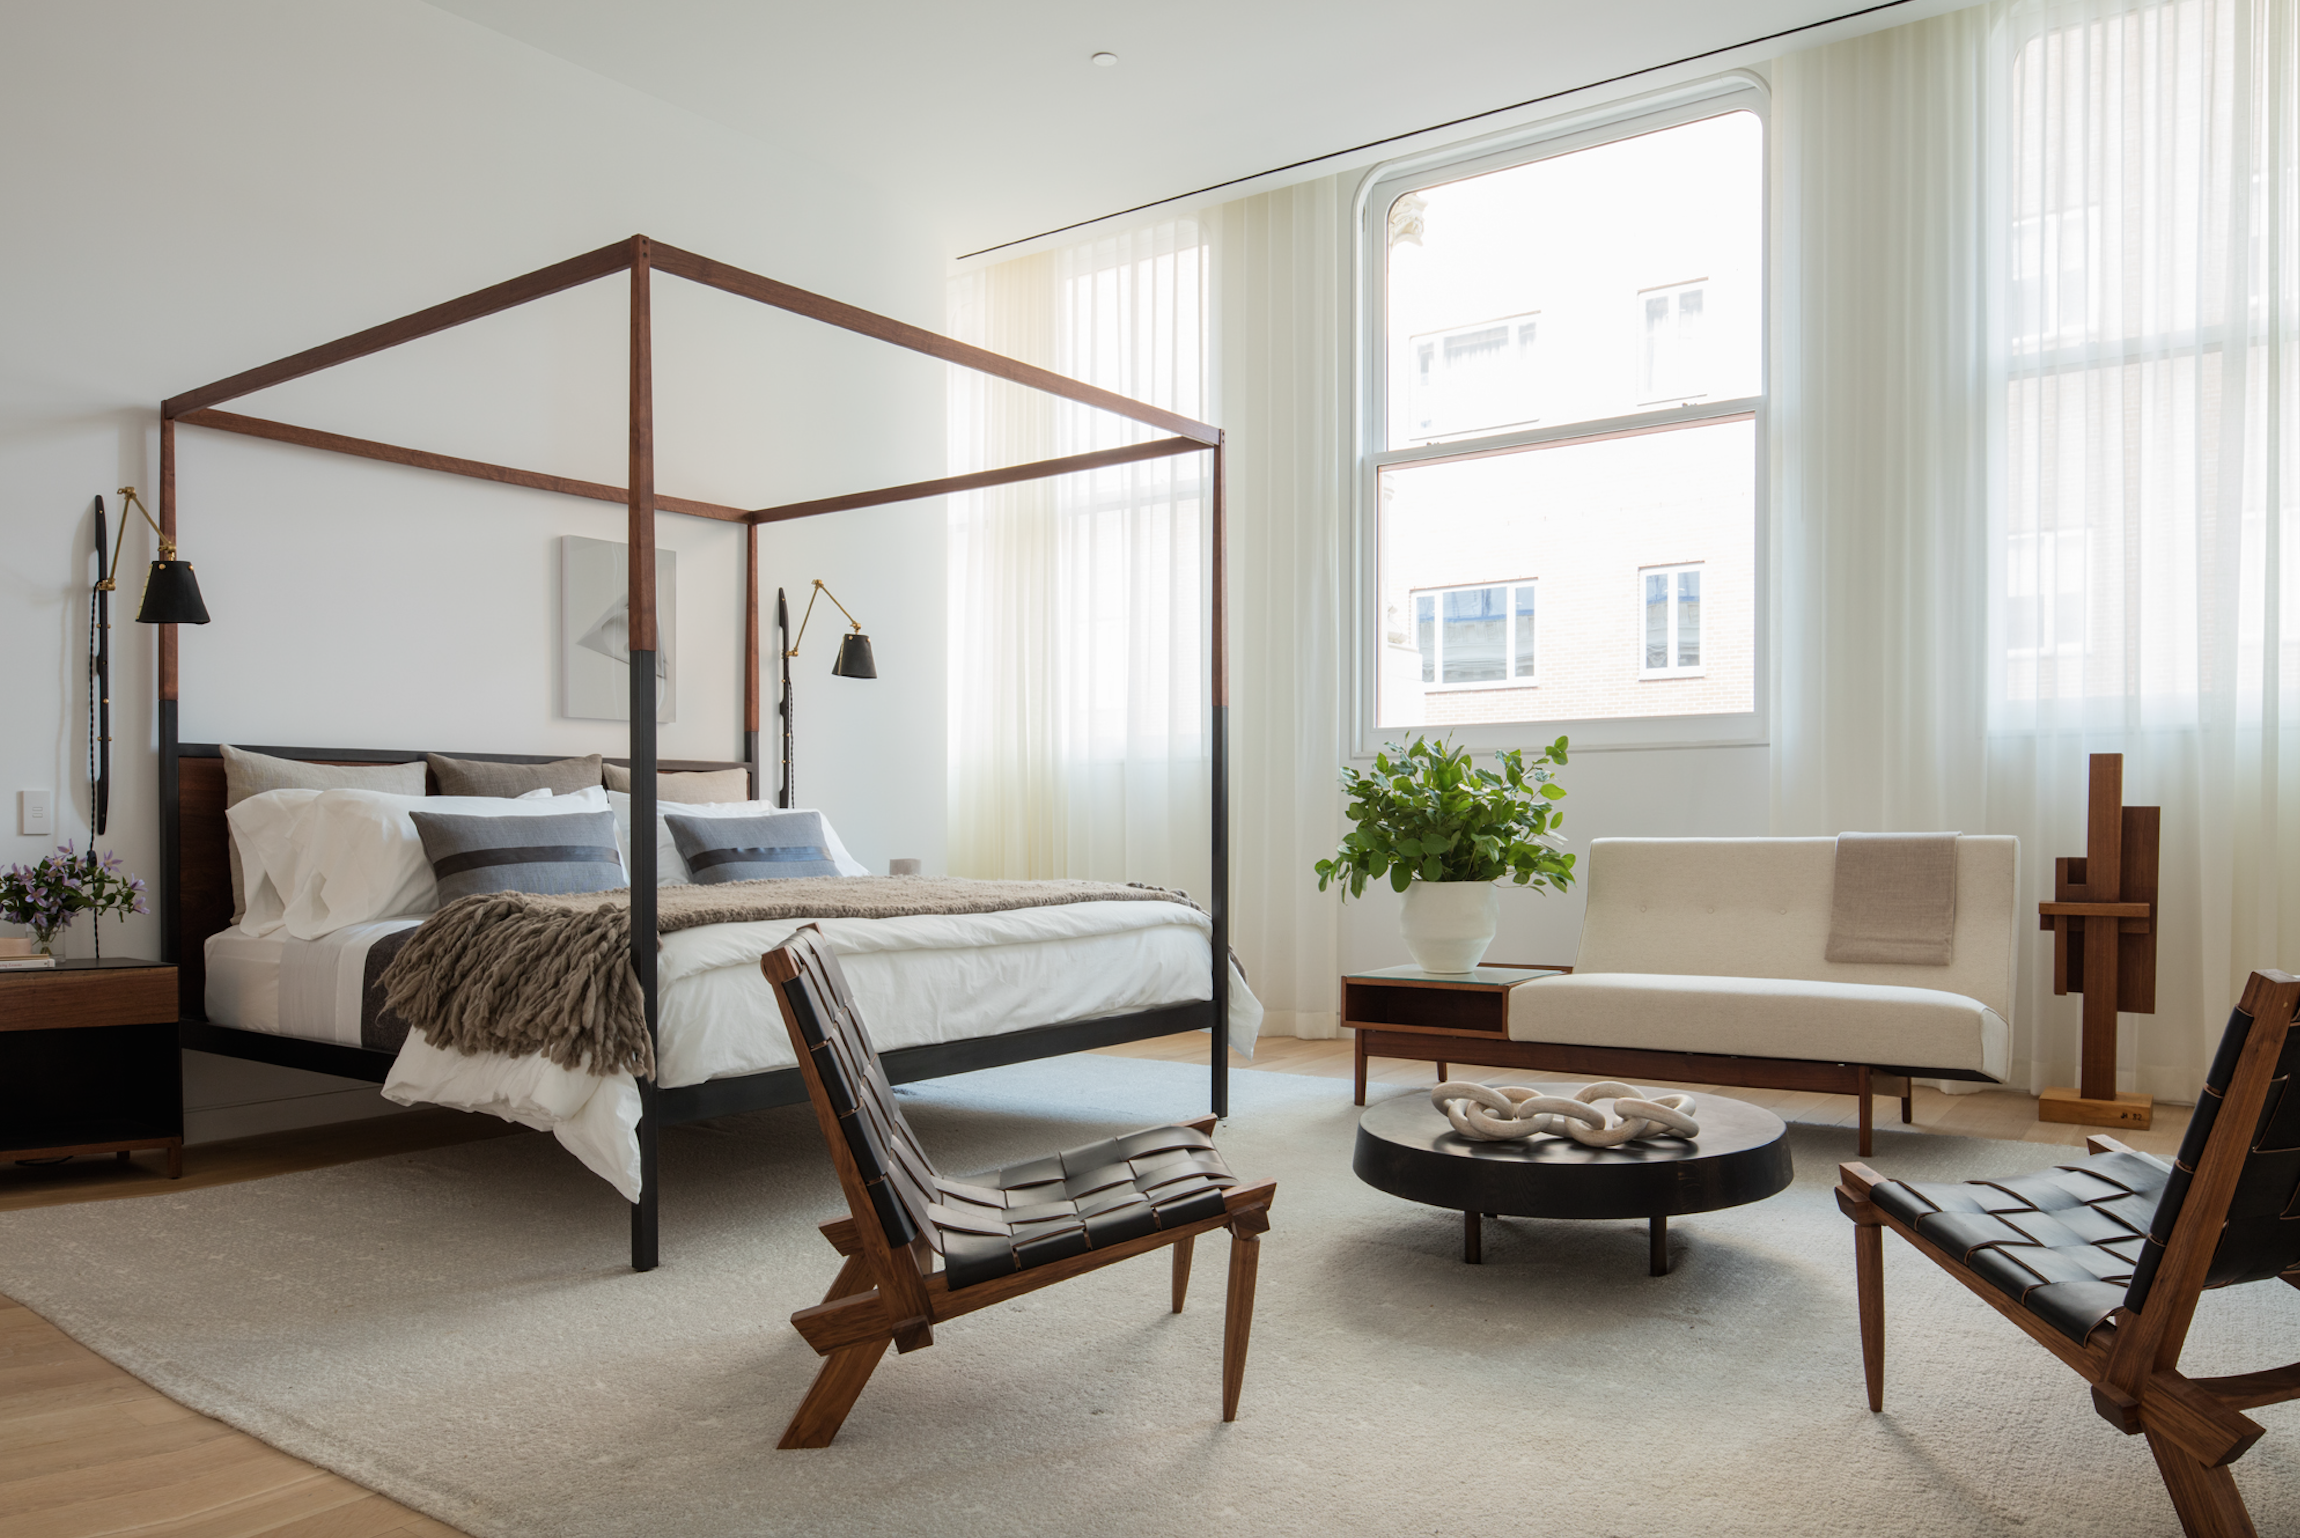 Tour This Absolutely Stunning Tribeca Penthouse Perched Atop The Shigeru Ban-Designed Cast Iron House